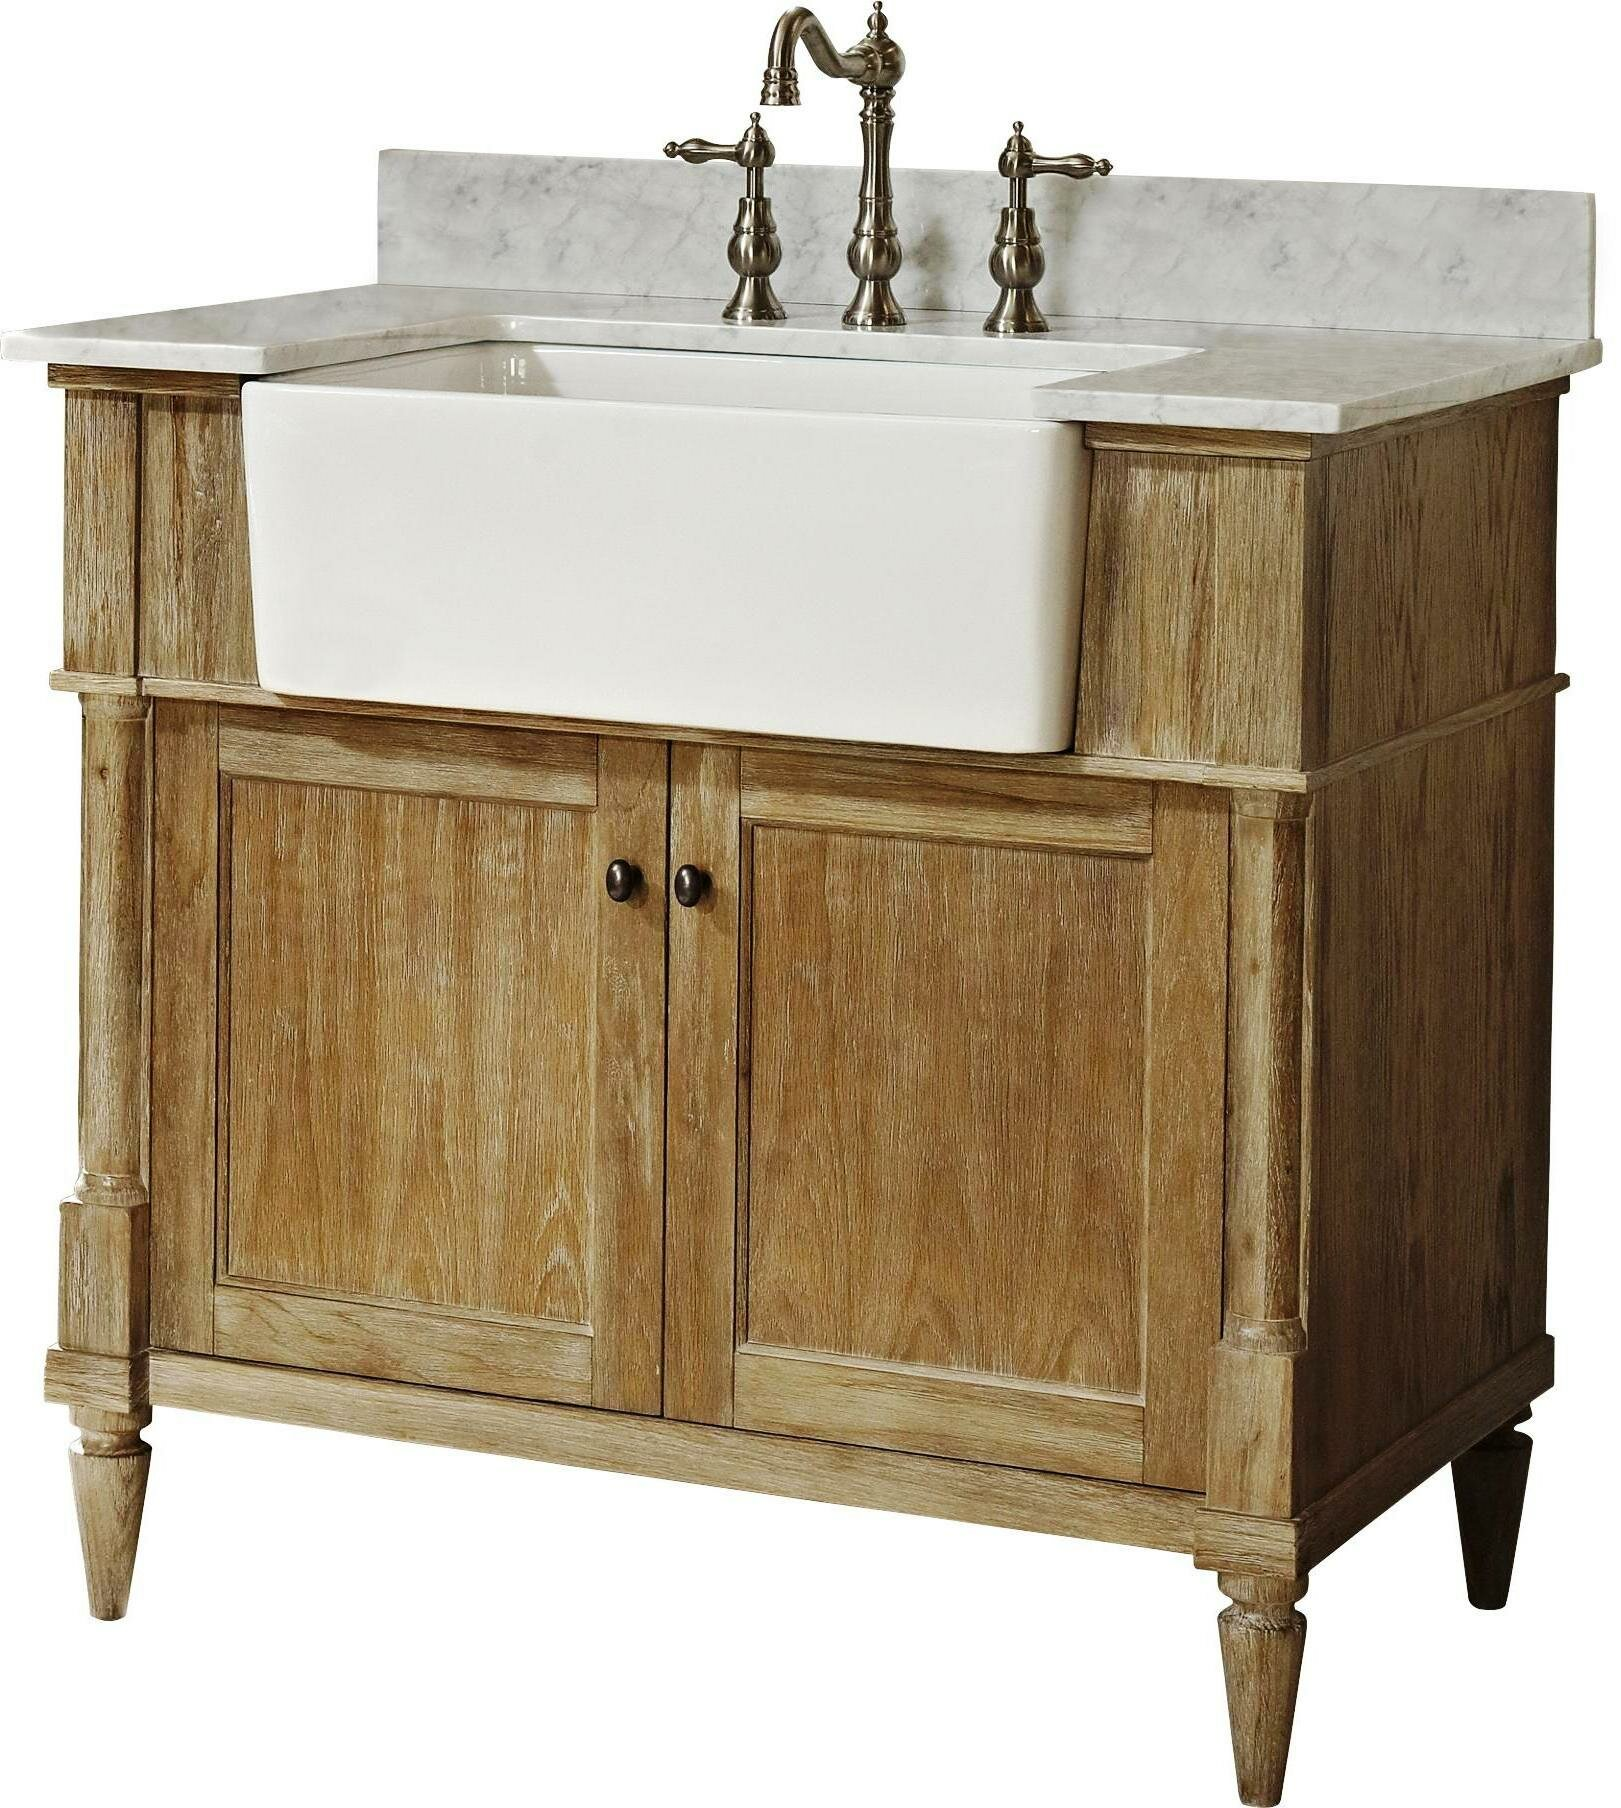 Pottery Barn Vanity | Pb Vanity | Bathroom Sink and Vanity